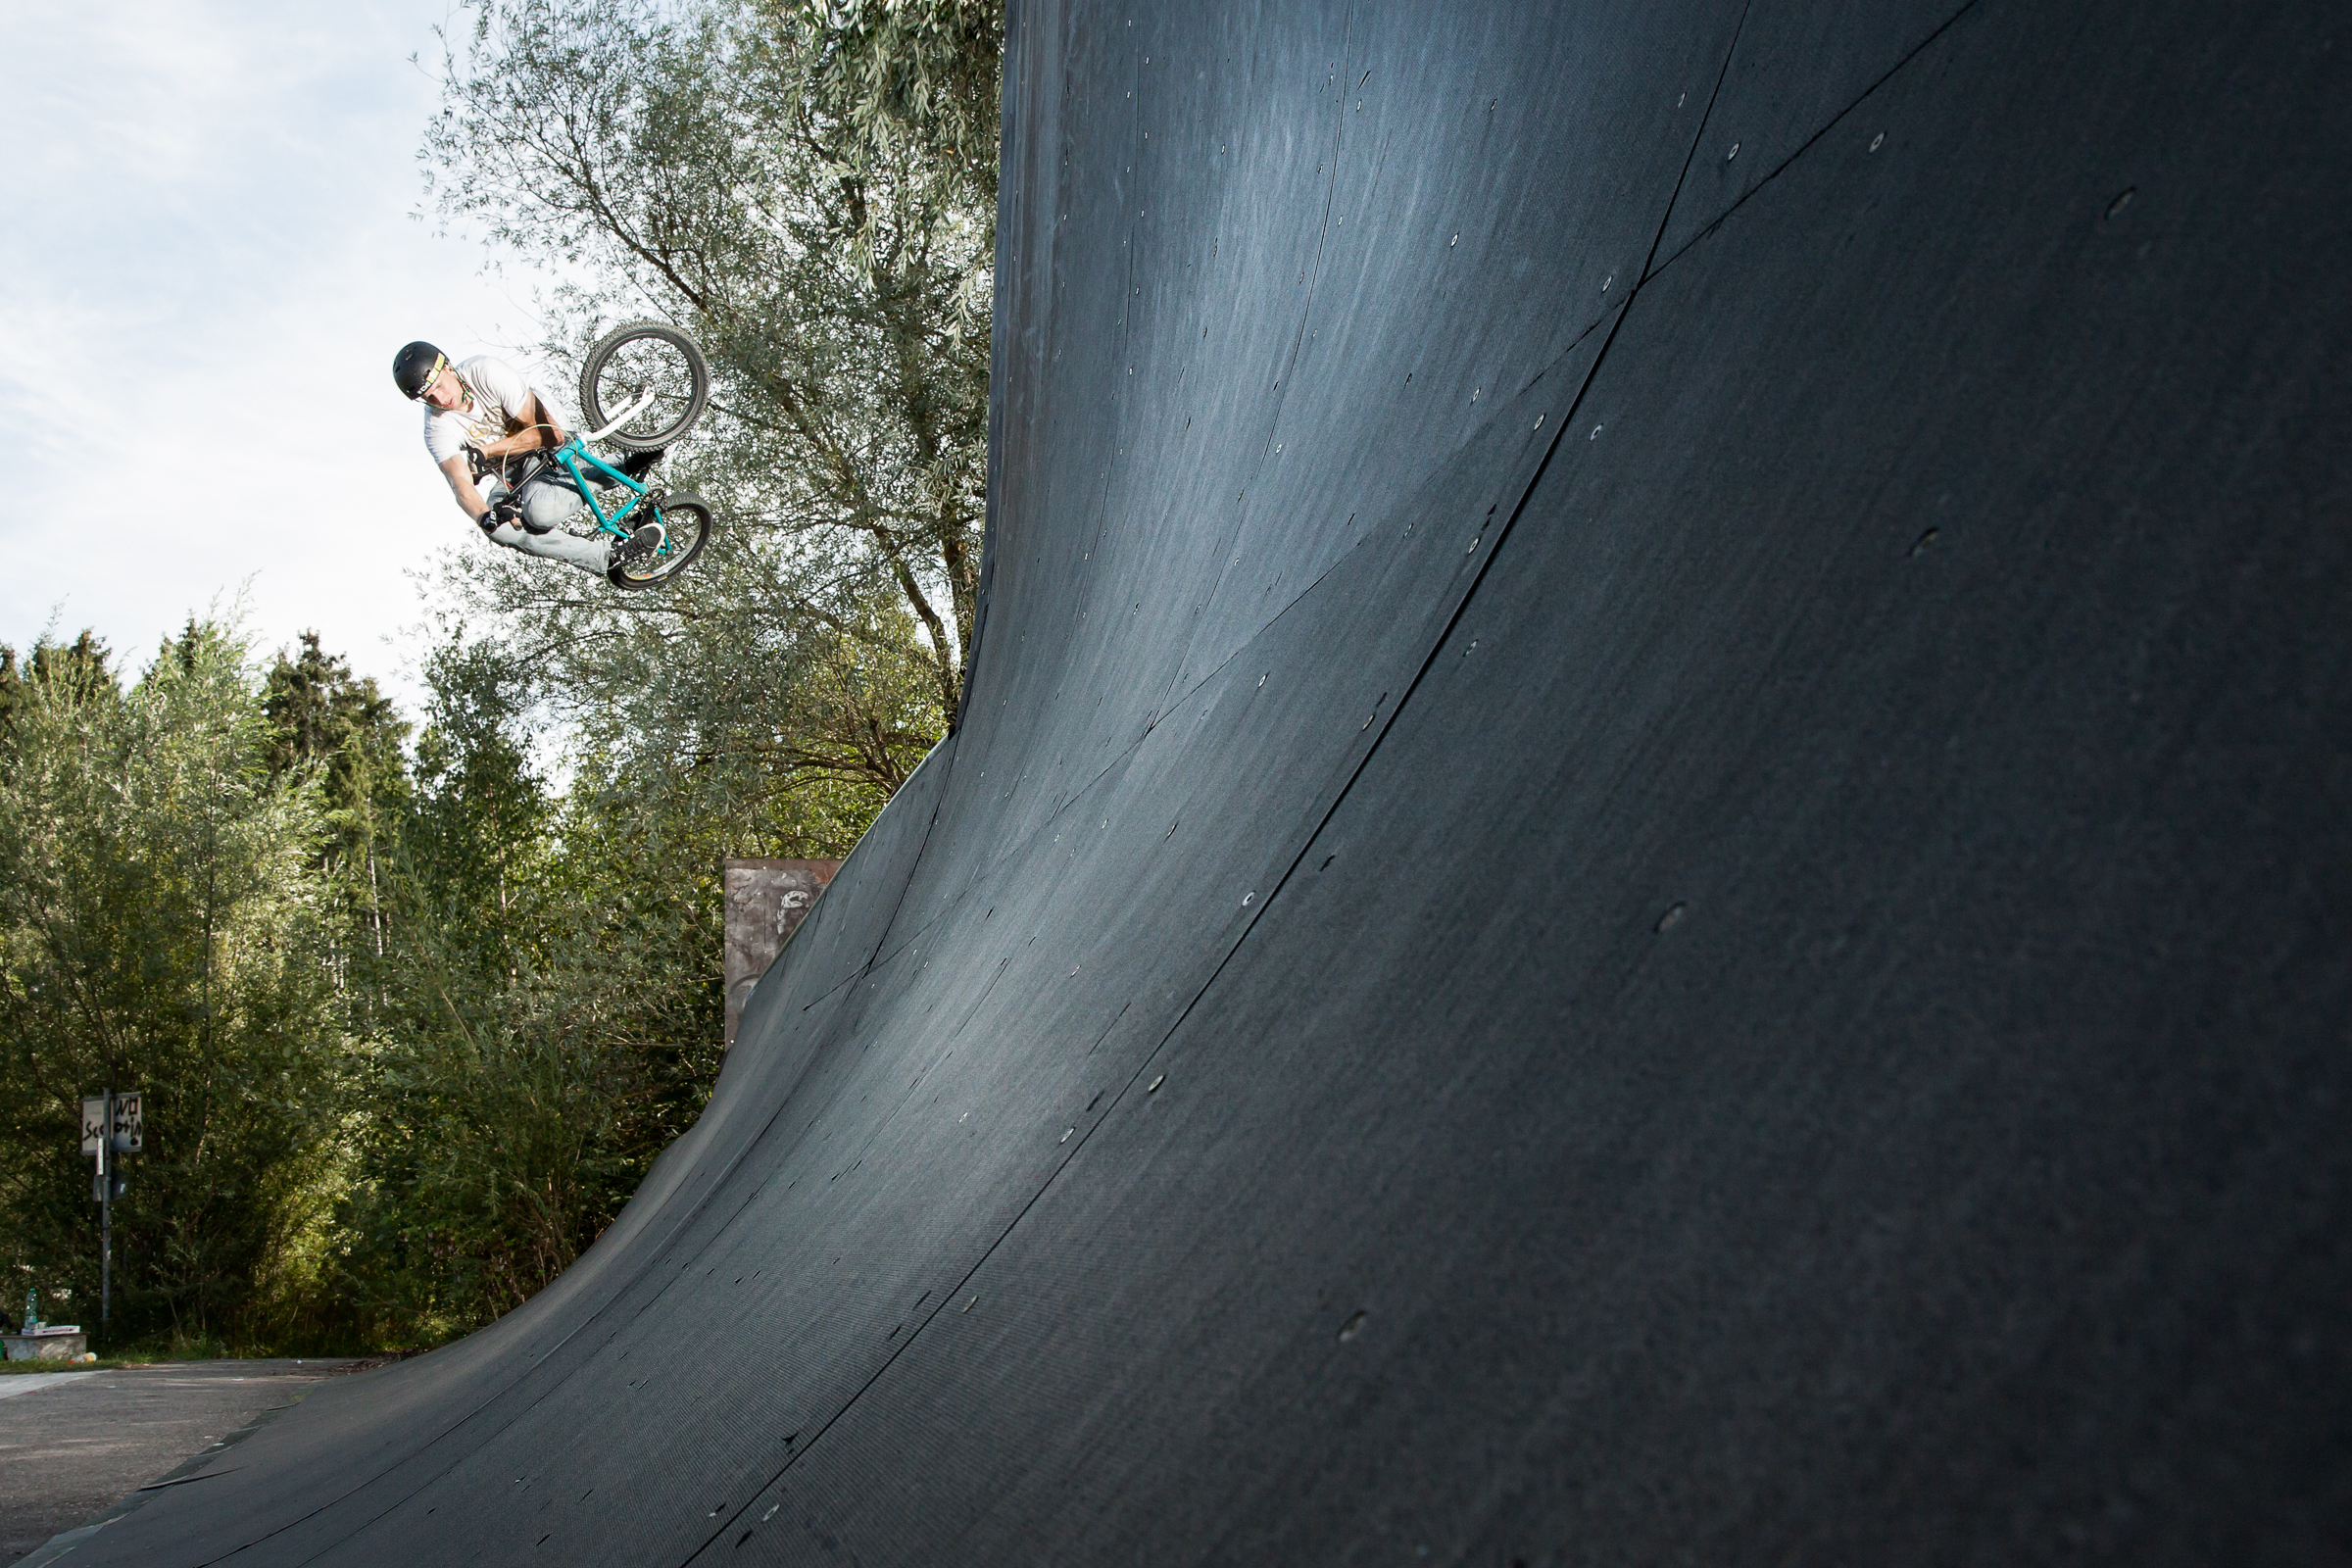 Outdoor action photography of a BMX rider. Sport photography, BMX, Skate.